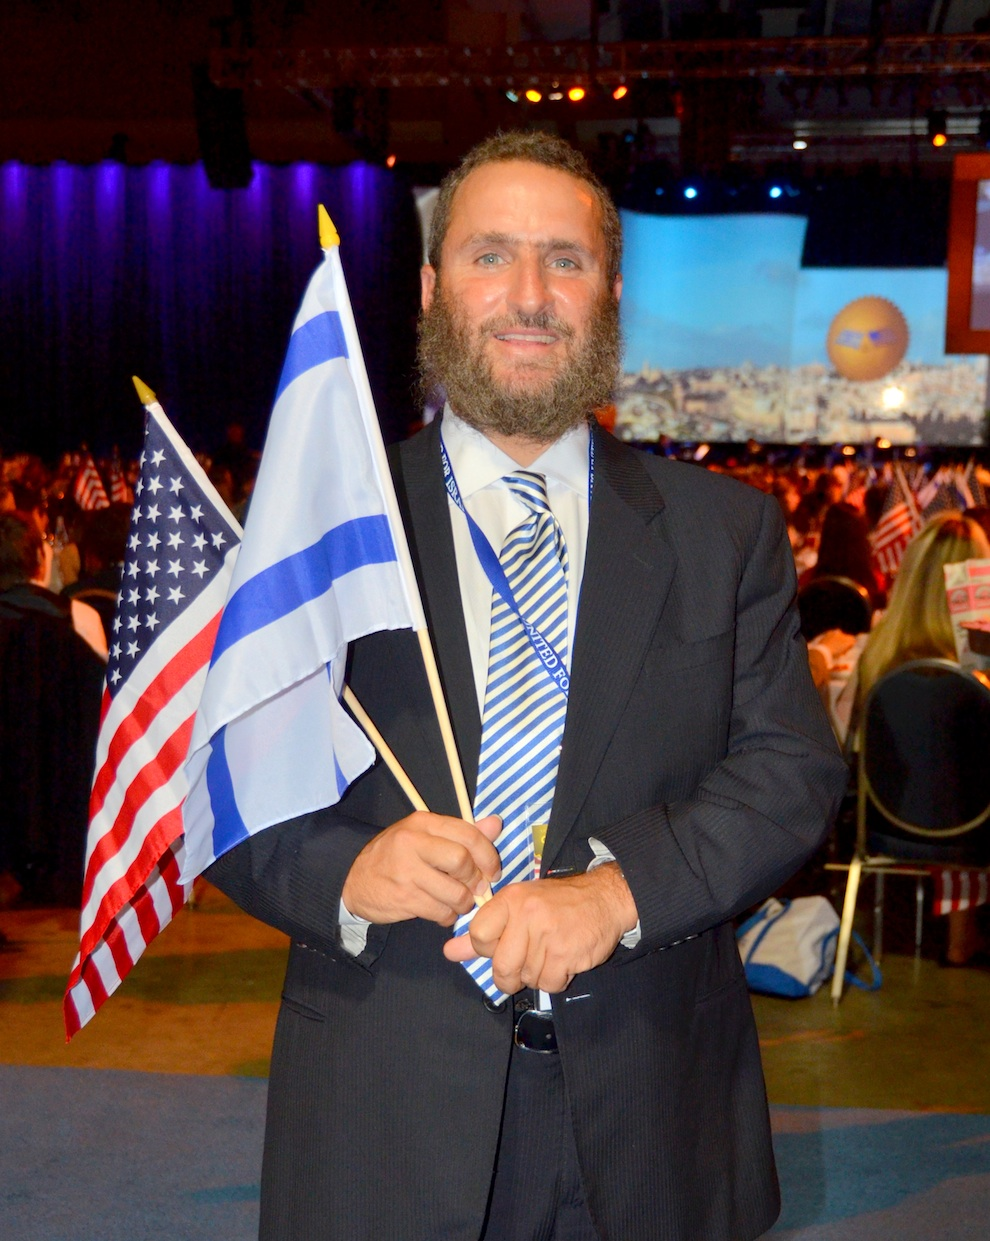 Click photo to download. Caption: Rabbi Shmuley Boteach at this year's Christians United for Israel (CUFI) conference. Boteach, a Republican and celebrity rabbi, lost in his bid to unseat Democratic Congressman Bill Pascrell in New Jersey. Credit: Maxine Dovere.